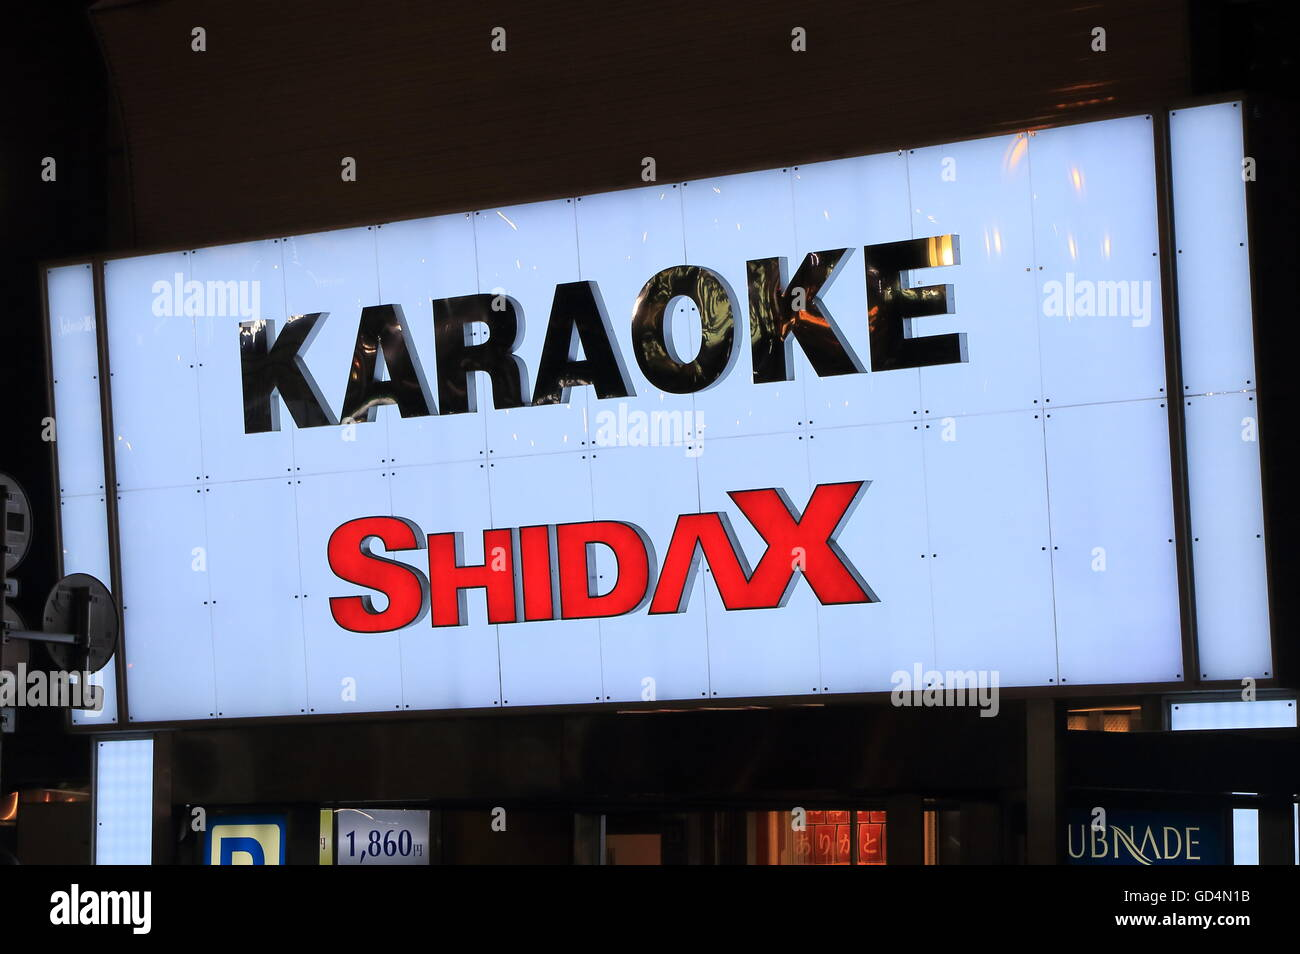 Aug 08, · • Do karaoke duets with top artists: Shawn Mendes, Jason Derulo, Train and more • Beat your singing score and sing like a karaoke pro With new /5(52K).